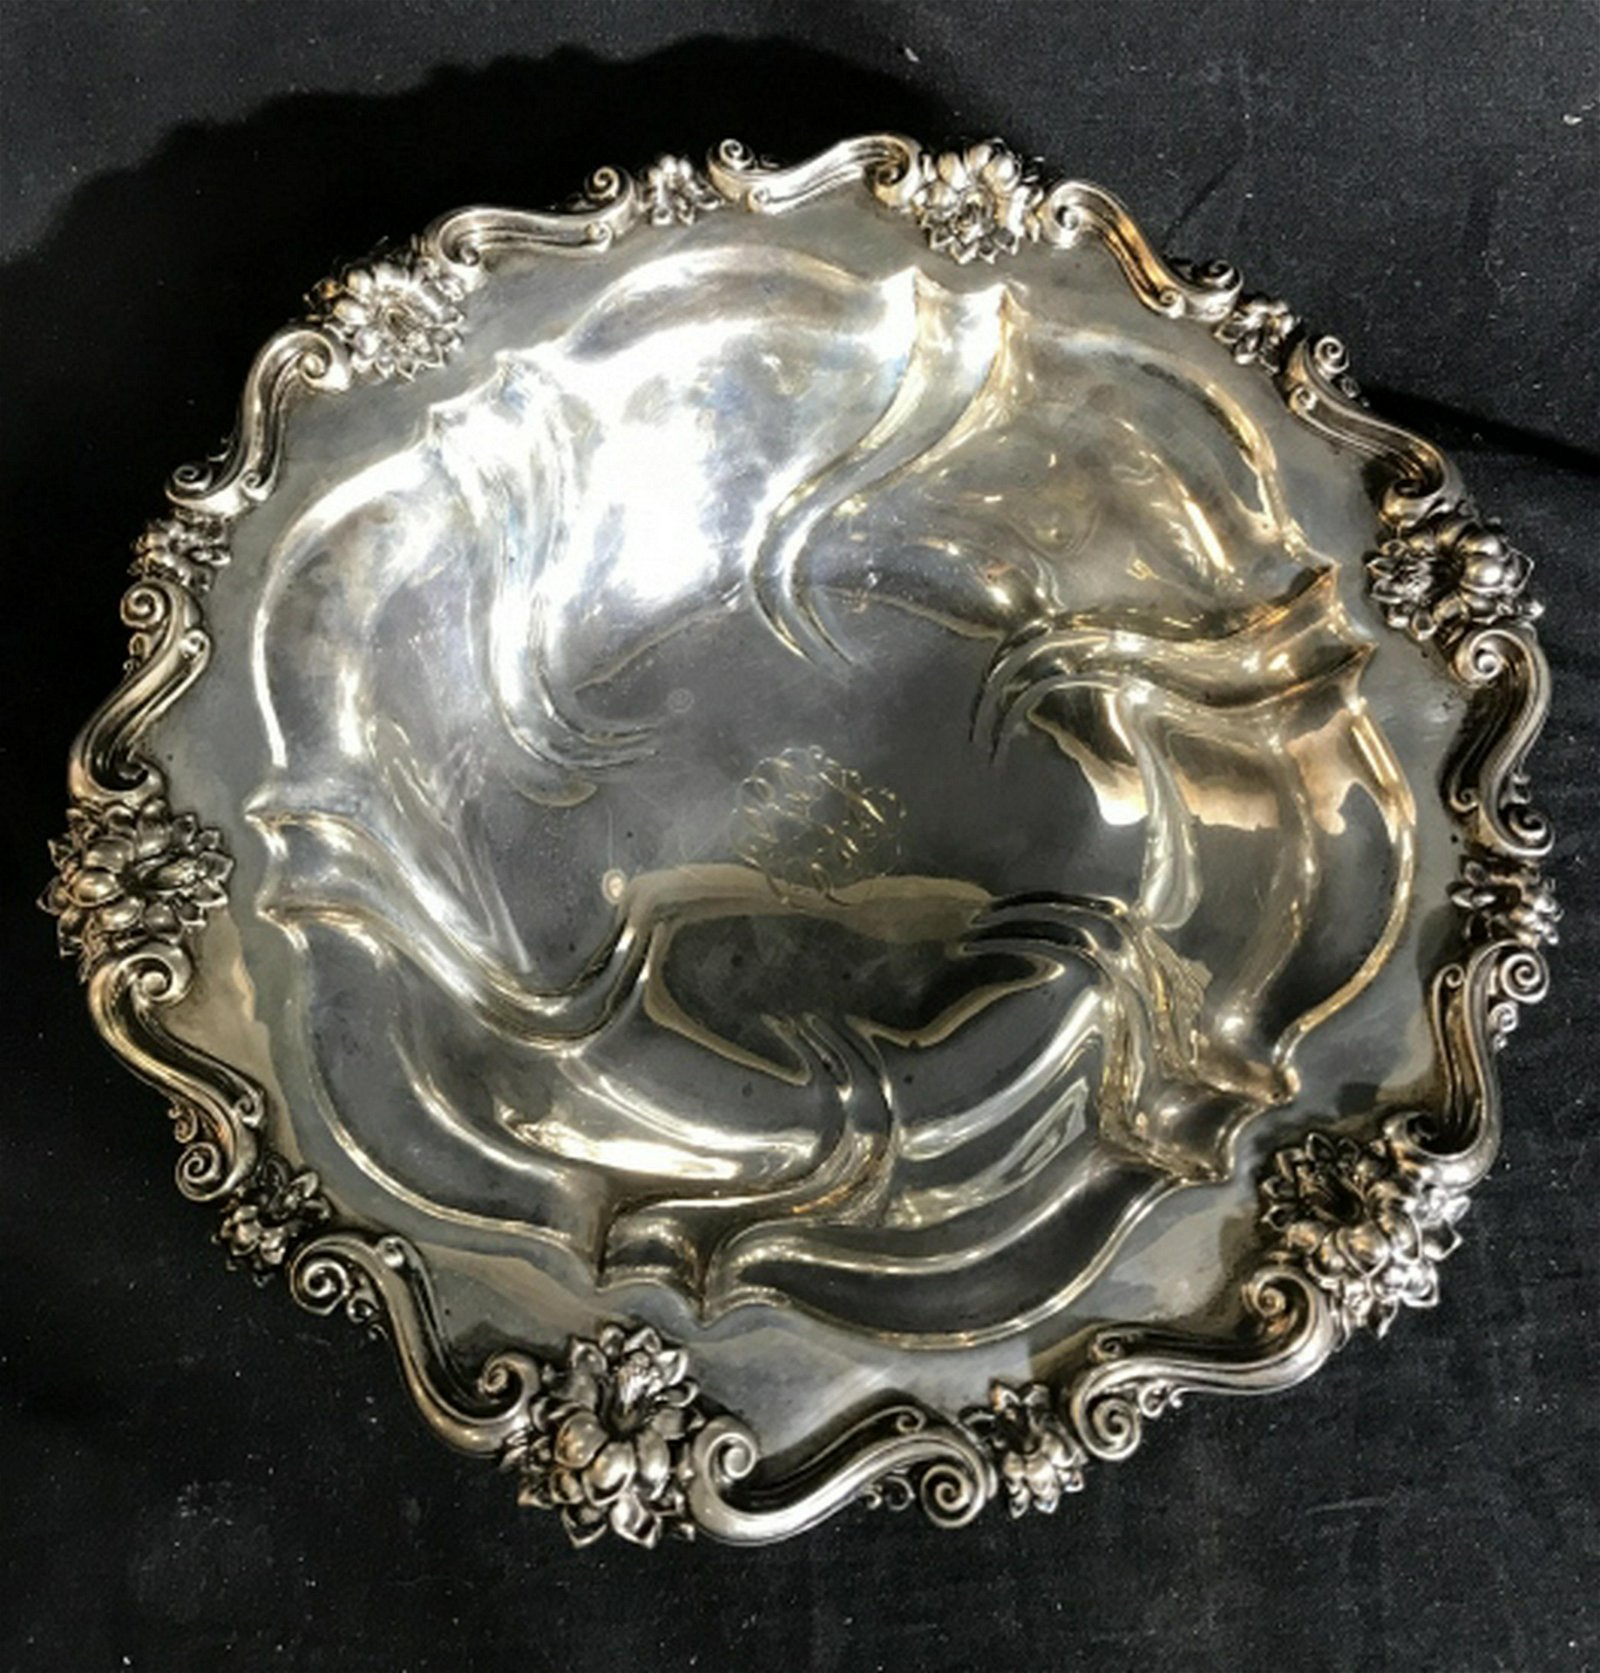 Antique Sterling Silver Centerpiece Bowl Swirl pattern